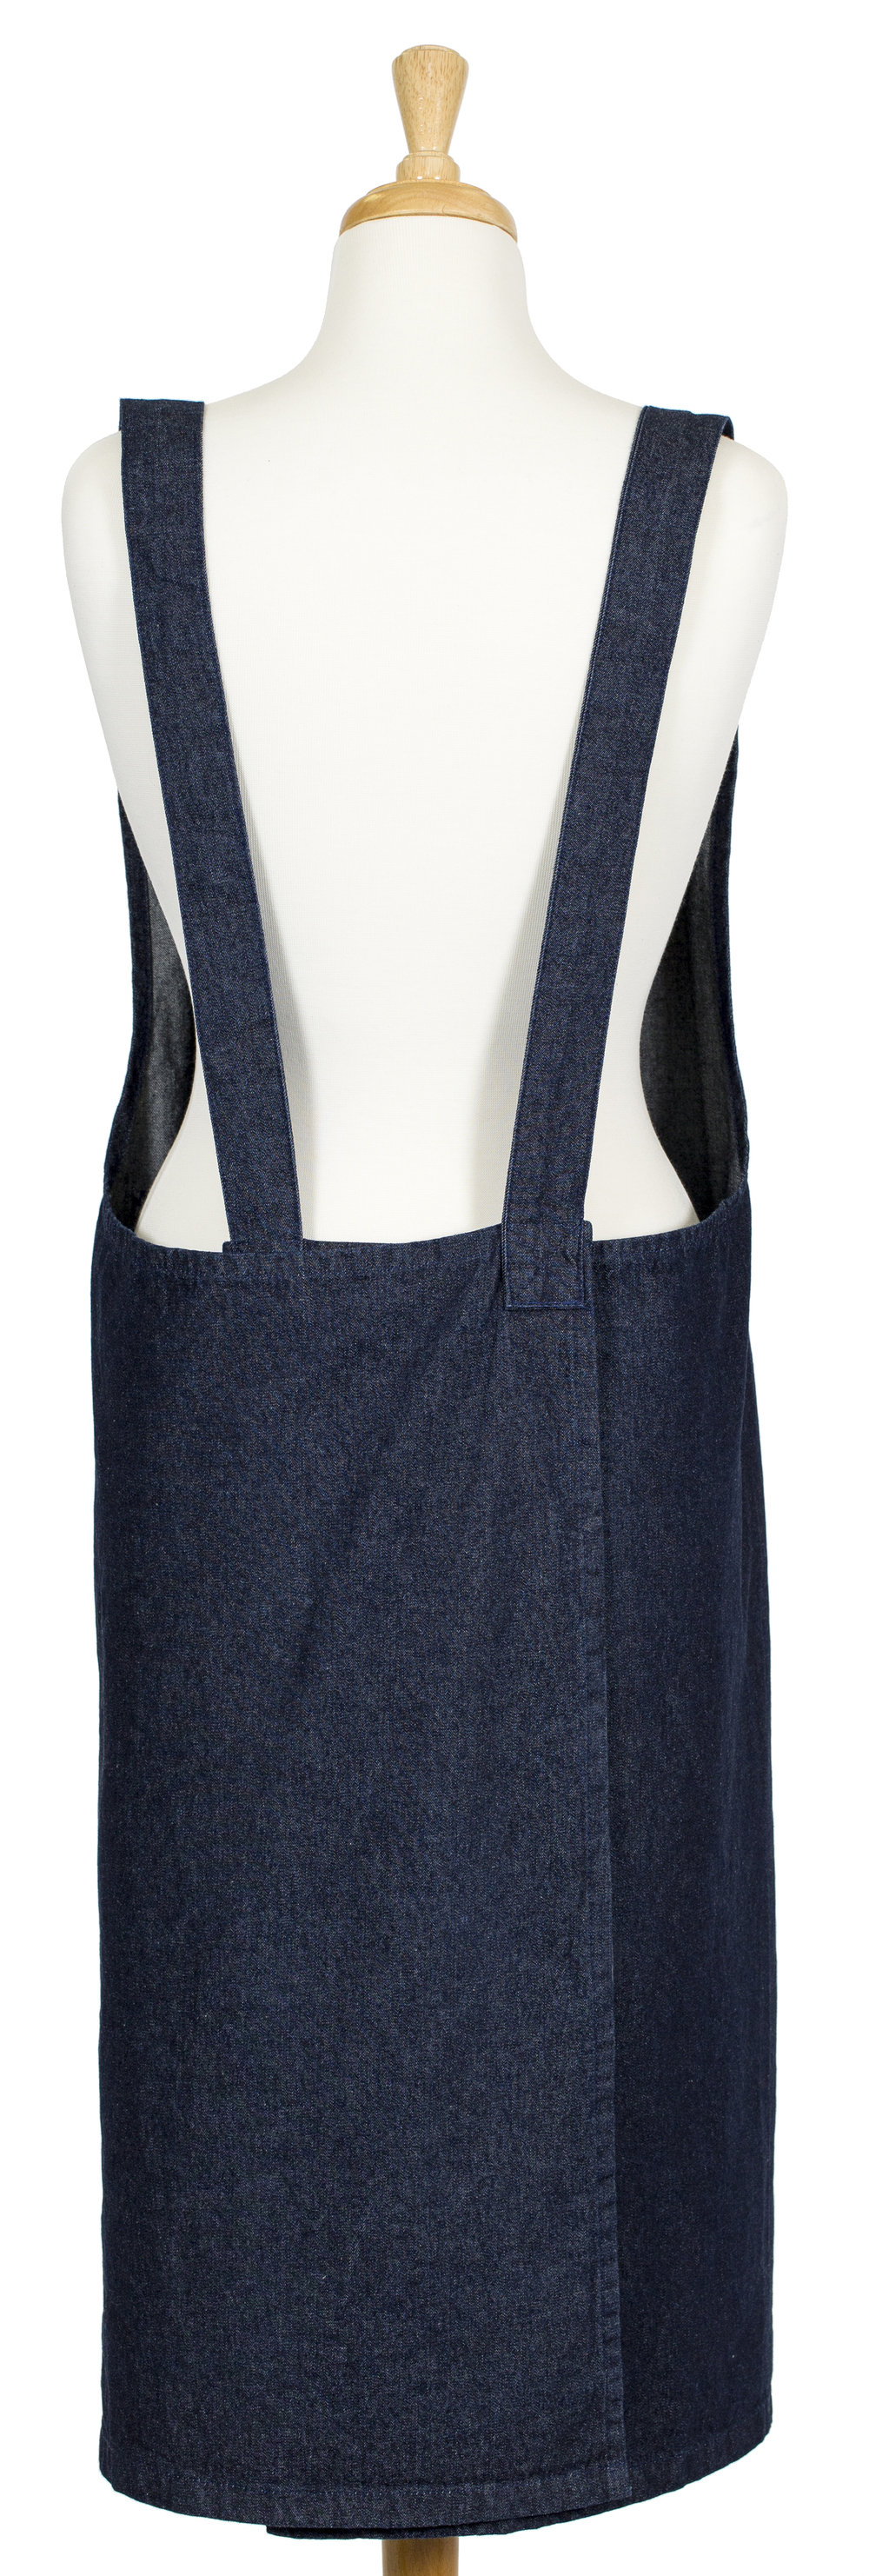 The Stitch Society Denim Susie Pinafore Apron back.JPG